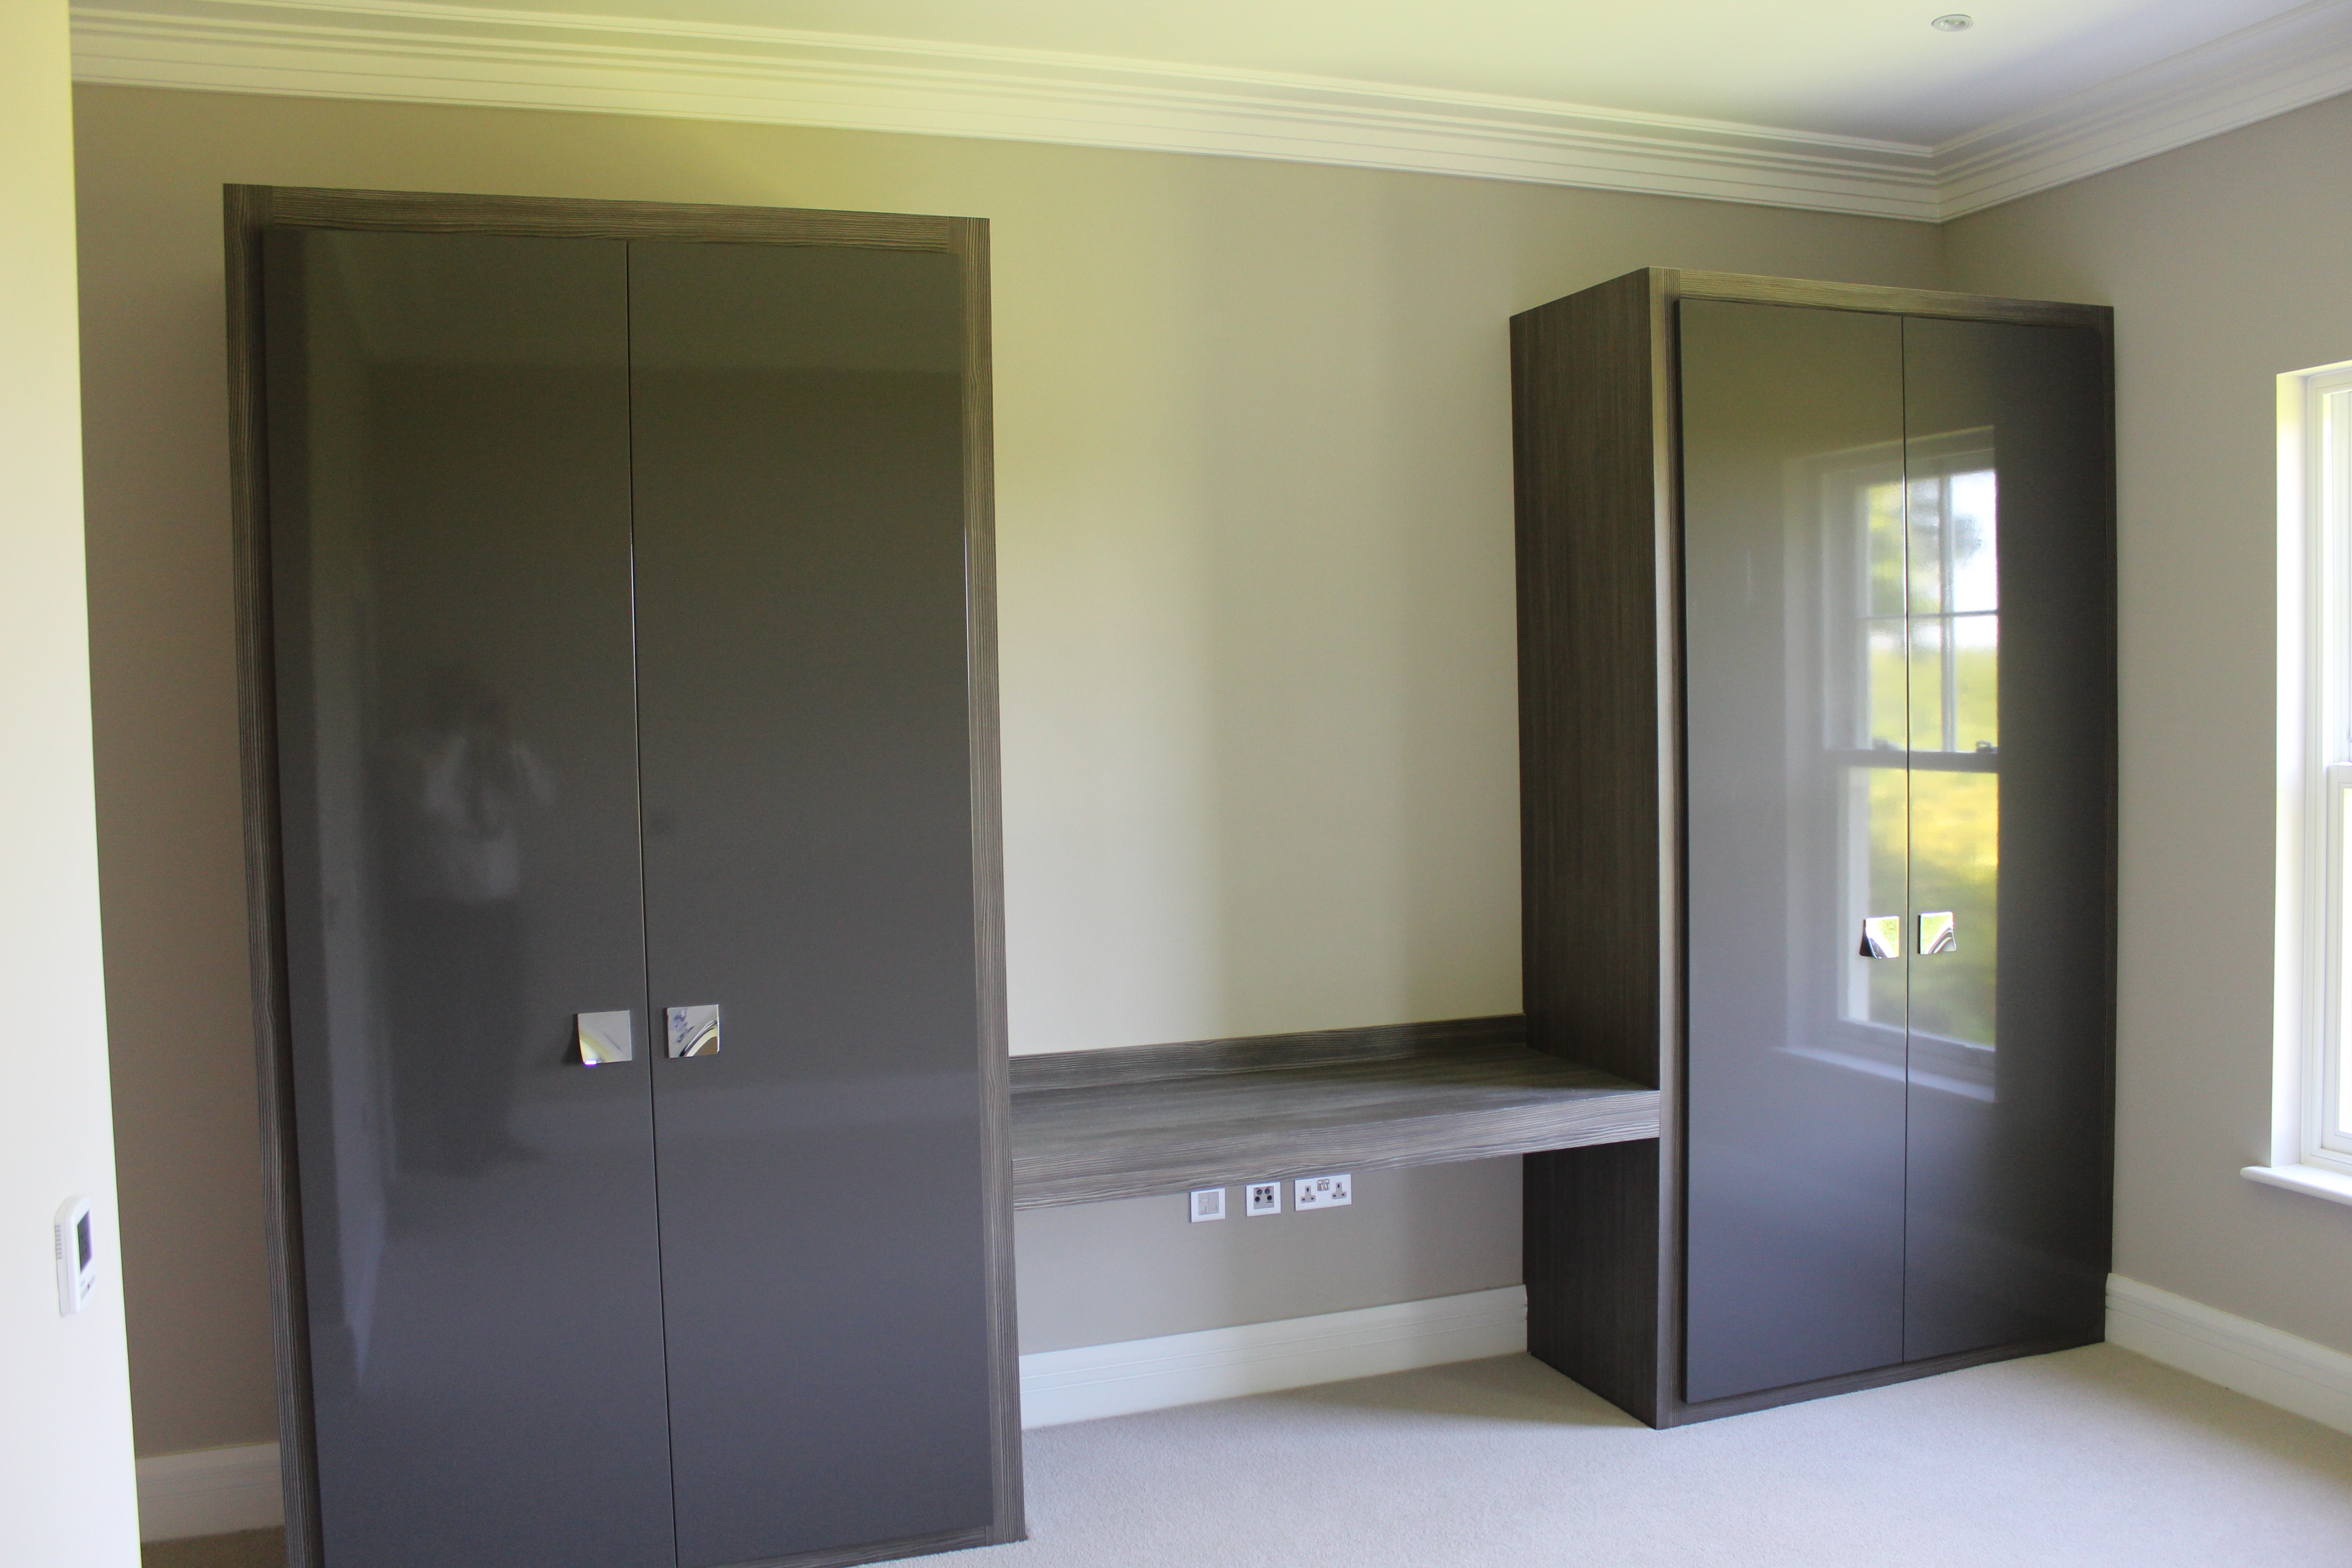 Chic Bespoke Fitted Furniture And Custom Built Furniture Bedrooms Timbercraft  Fitted Kitchens Bathrooms bespoke fitted bedroom furniture